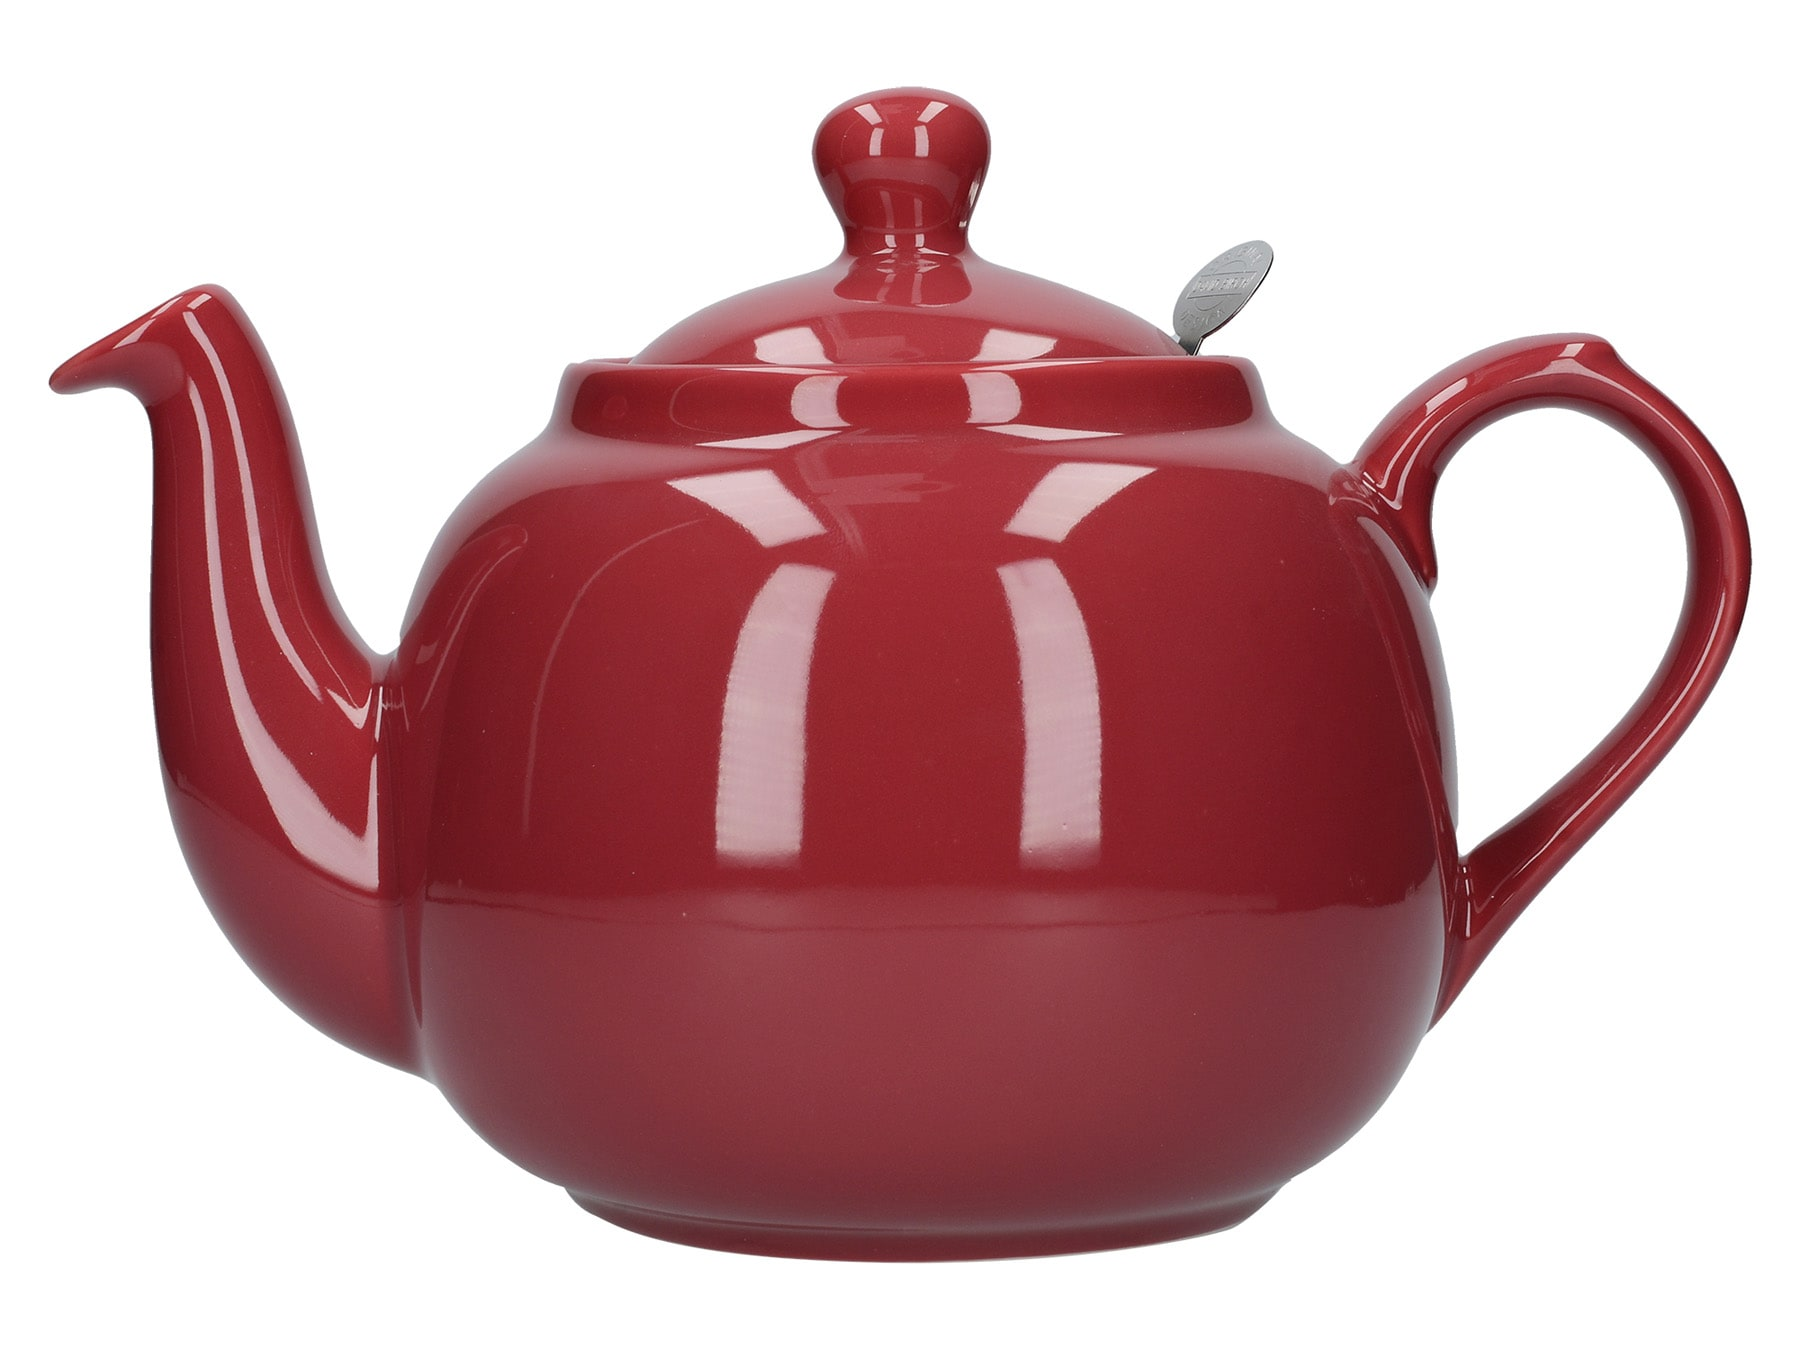 London Pottery Farmhouse 6 Cup Teapot Red